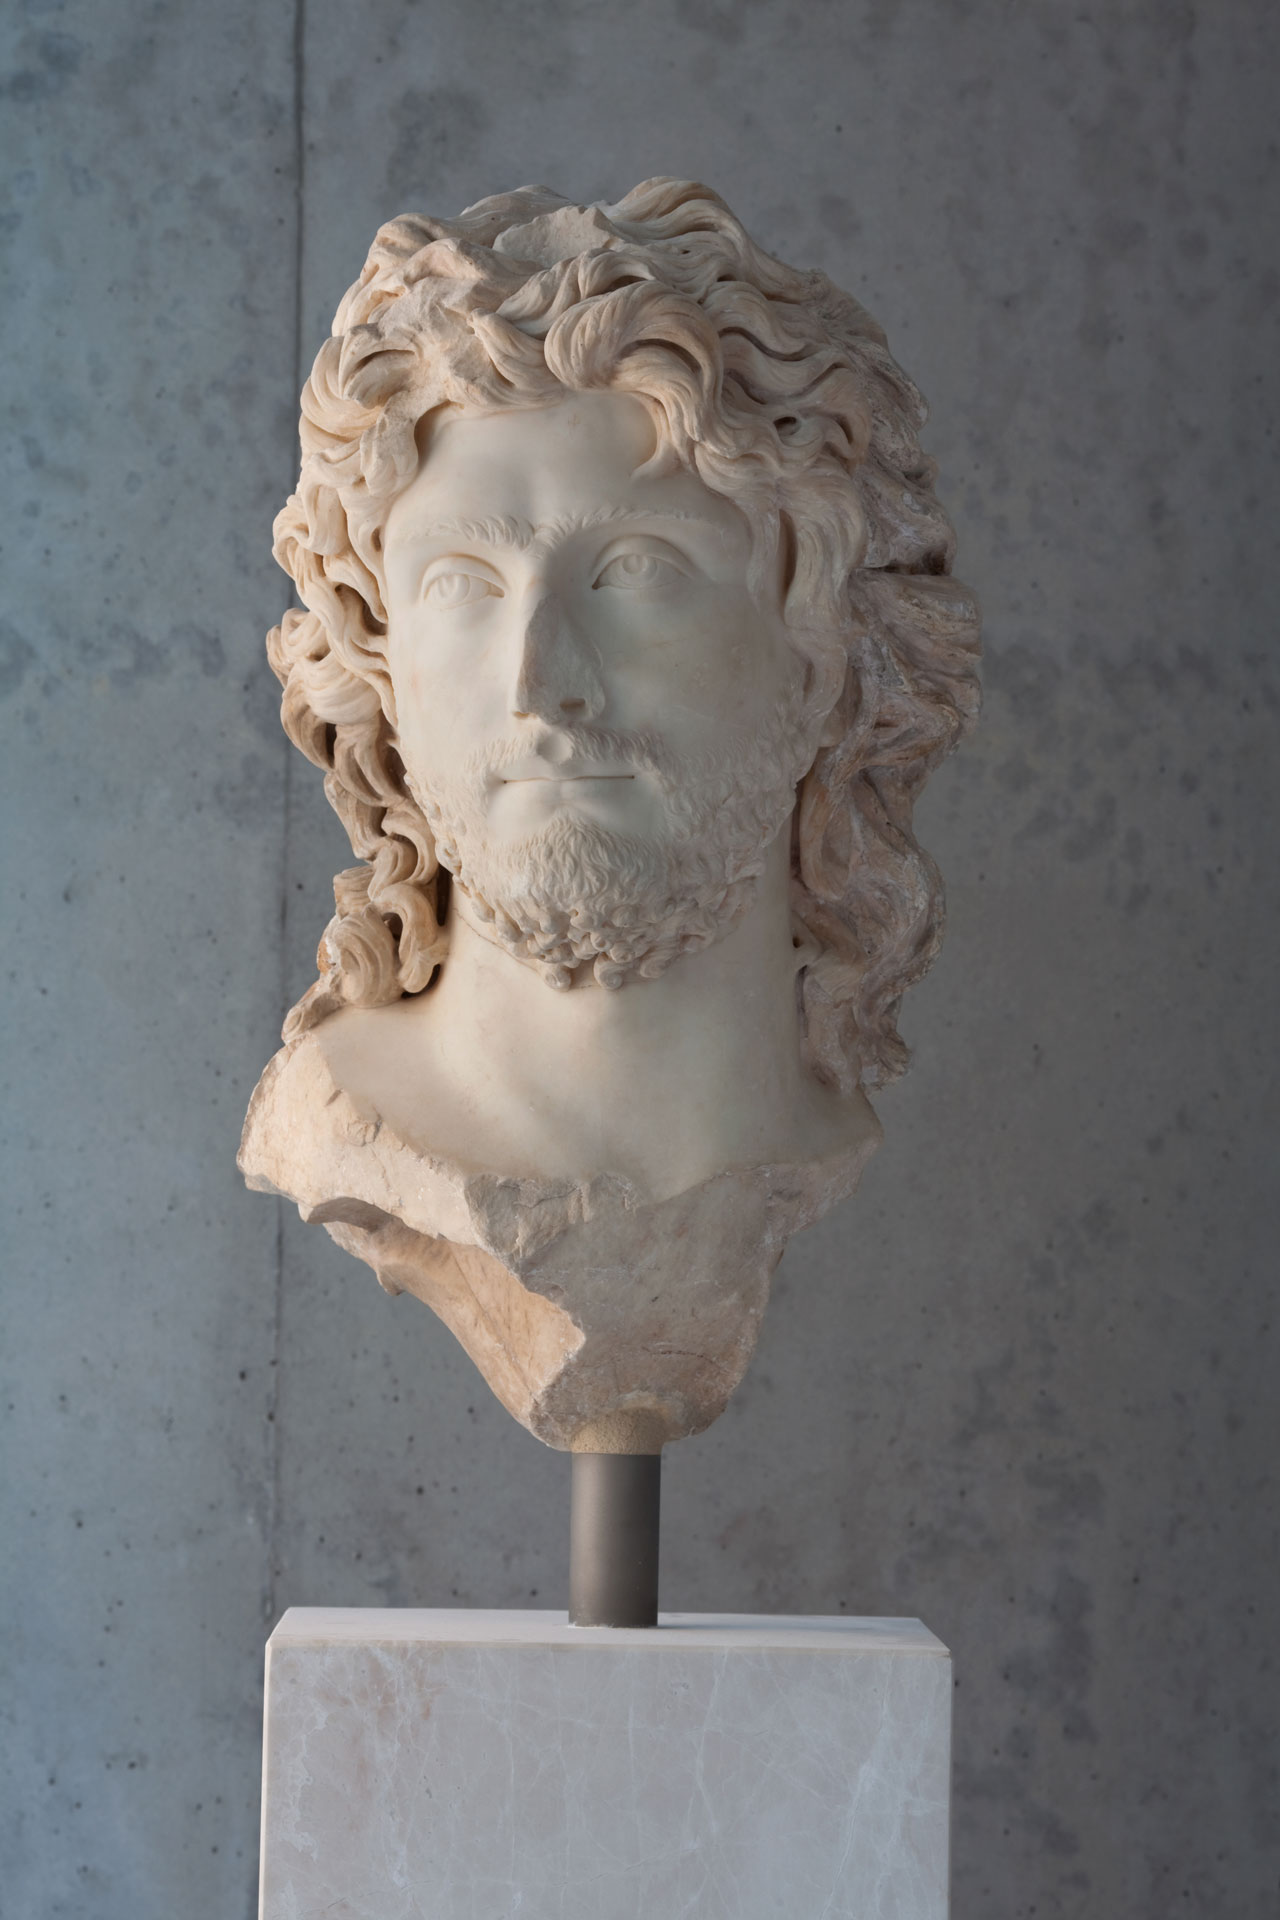 Head of a young barbaric leader. Found inside the Theatre of Dionysus. ca. 2nd c. AD. Photo by Nikos Daniilidis © The Acropolis Museum.